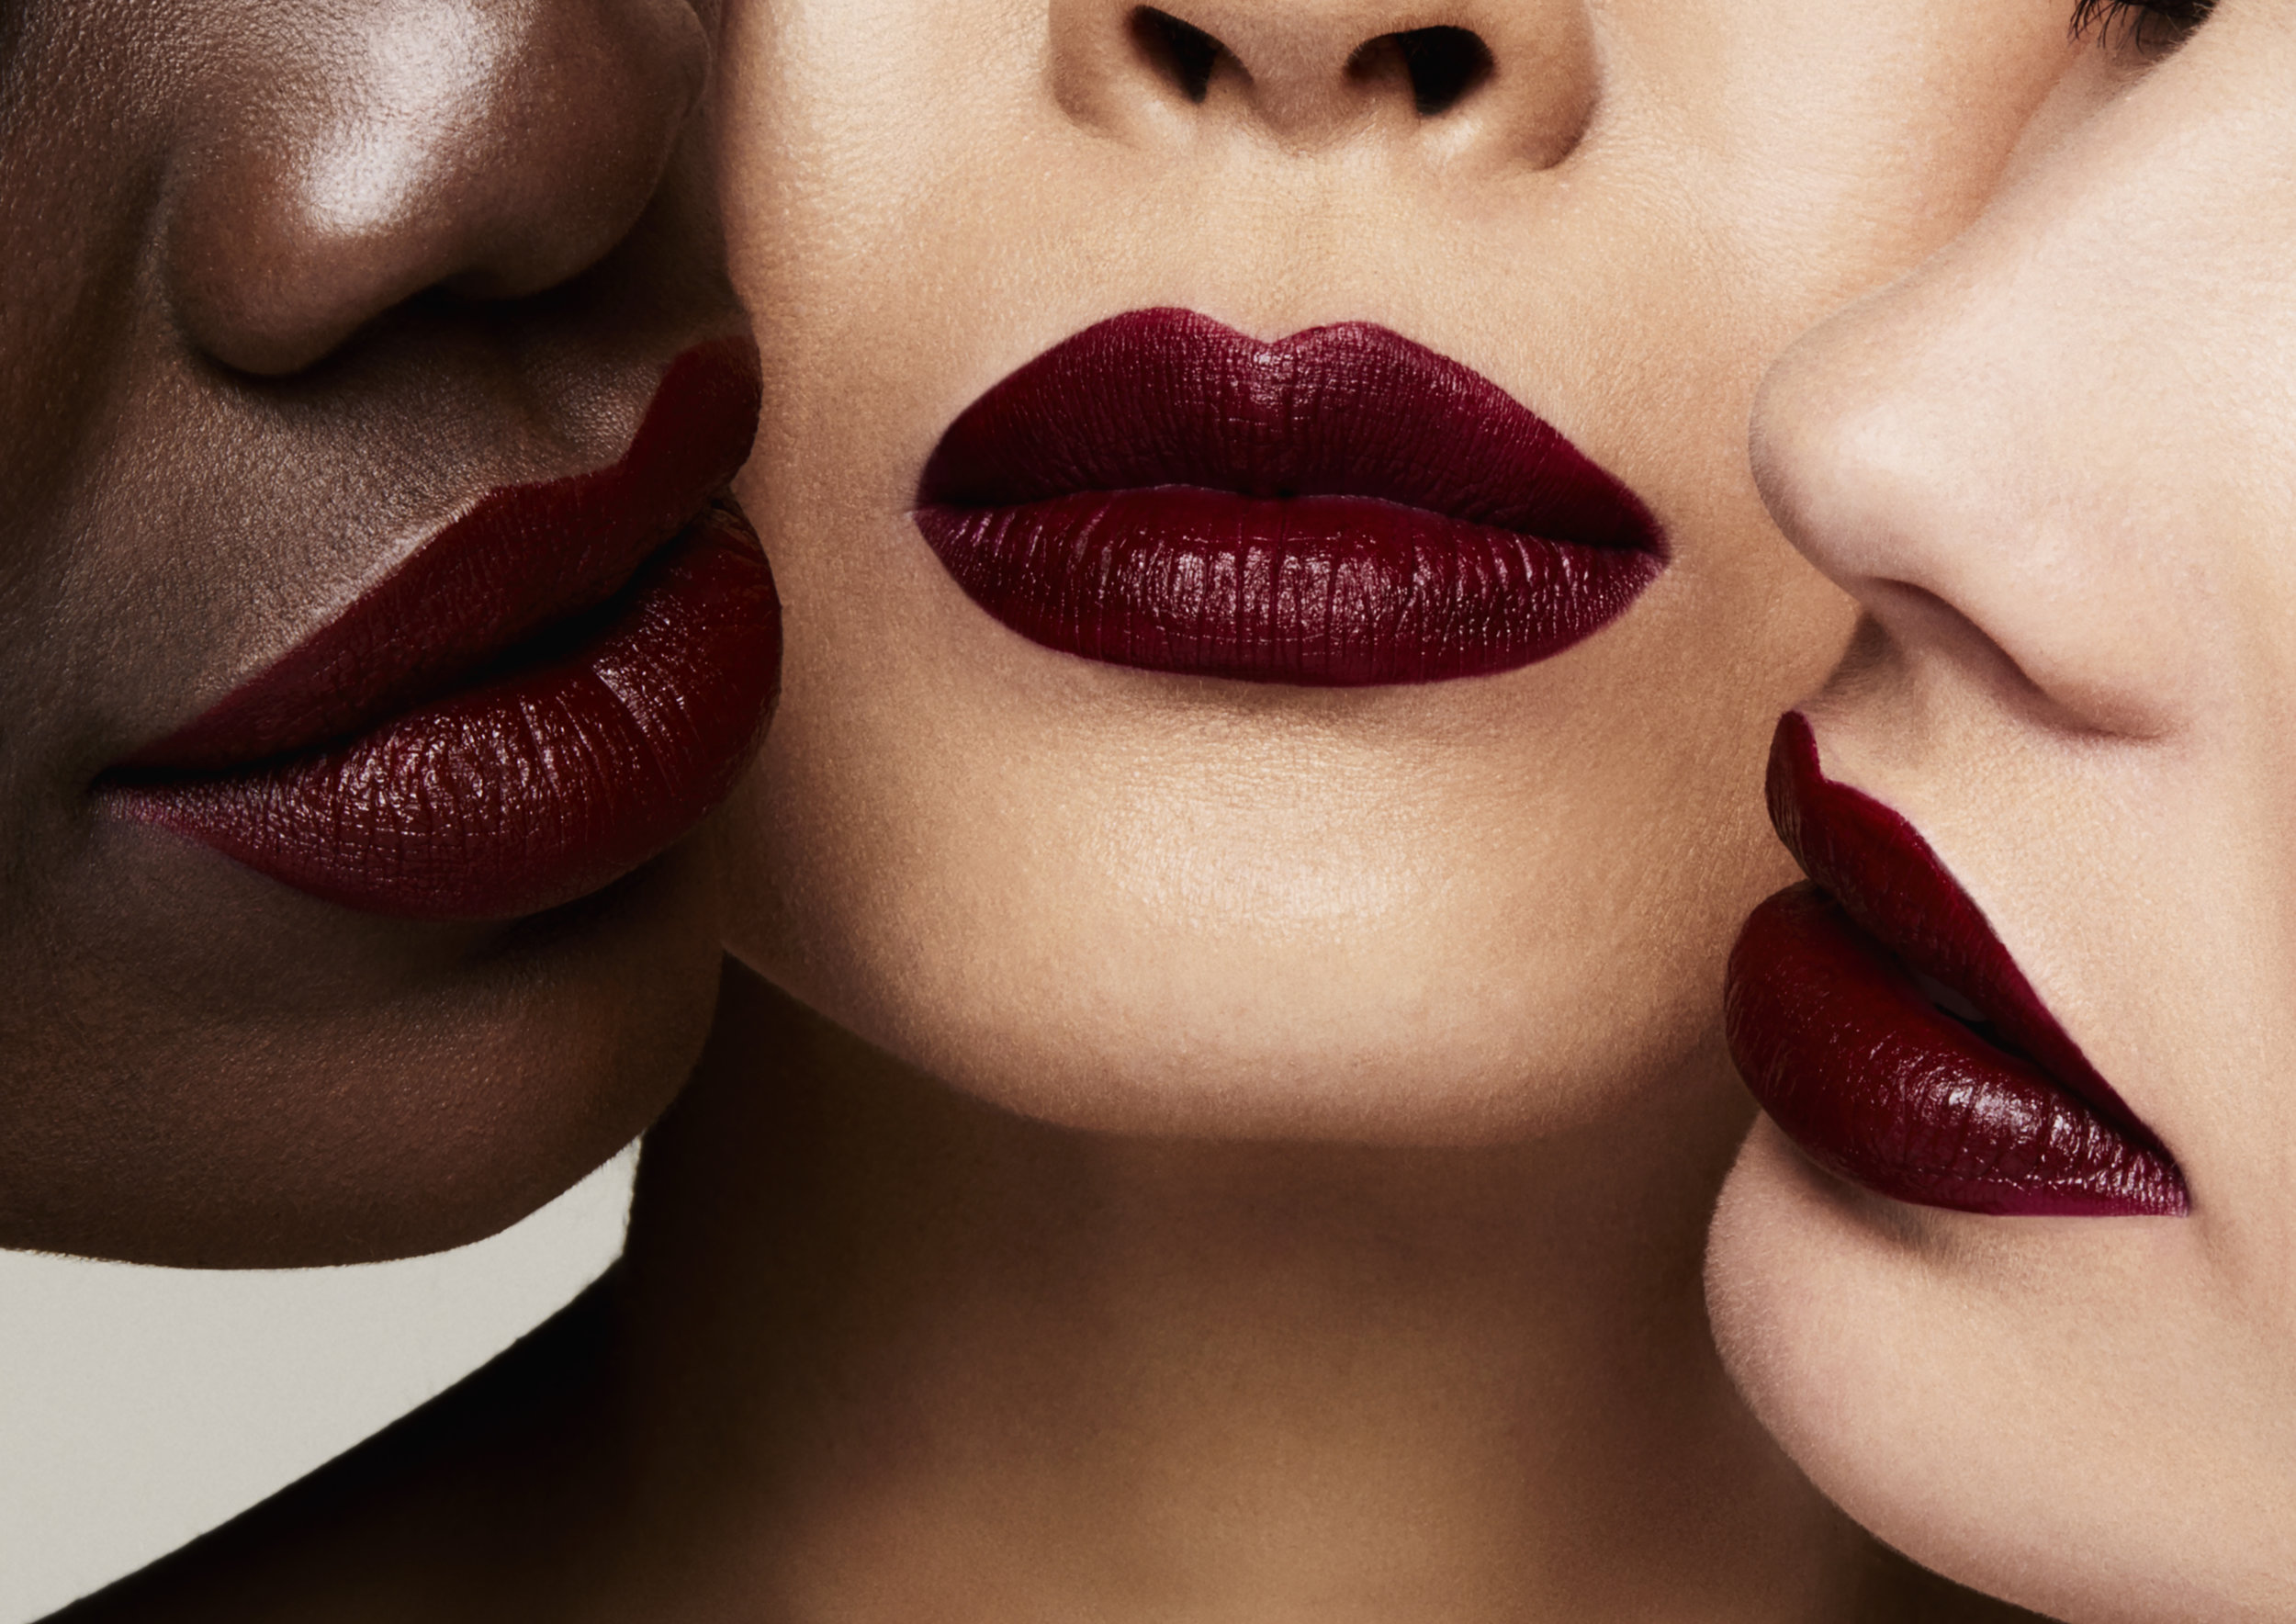 BeautyPhotography_TomFordBeauty_LipstickEditorial_By_BriJohnson_0019.jpg